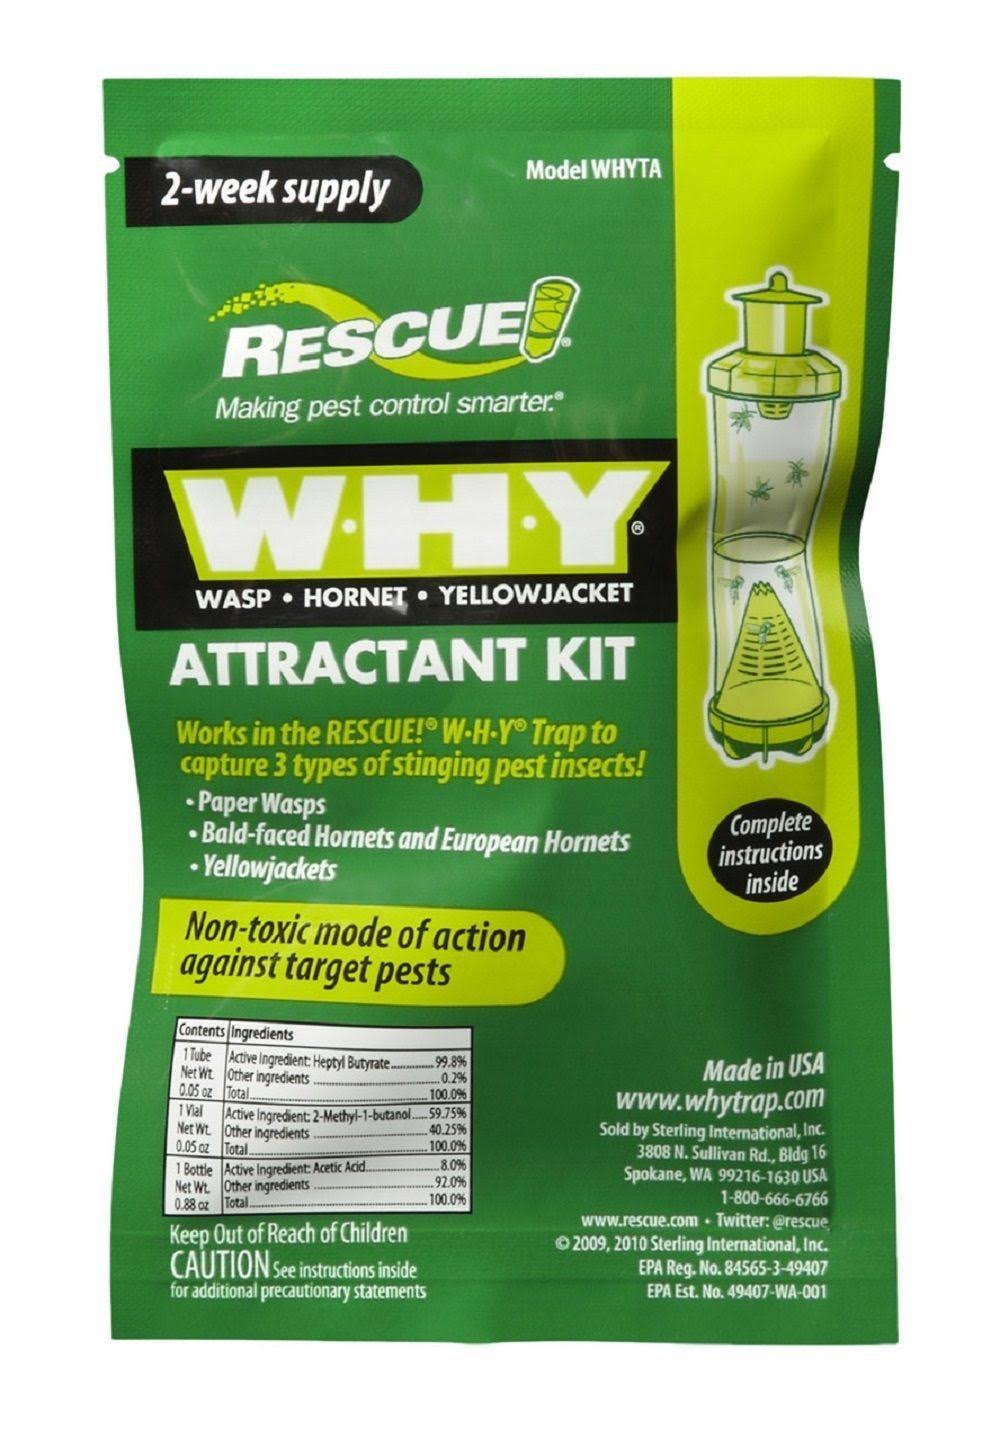 RESCUE WHY: Wasp, Hornet, Yellowjacket Attractant Kit